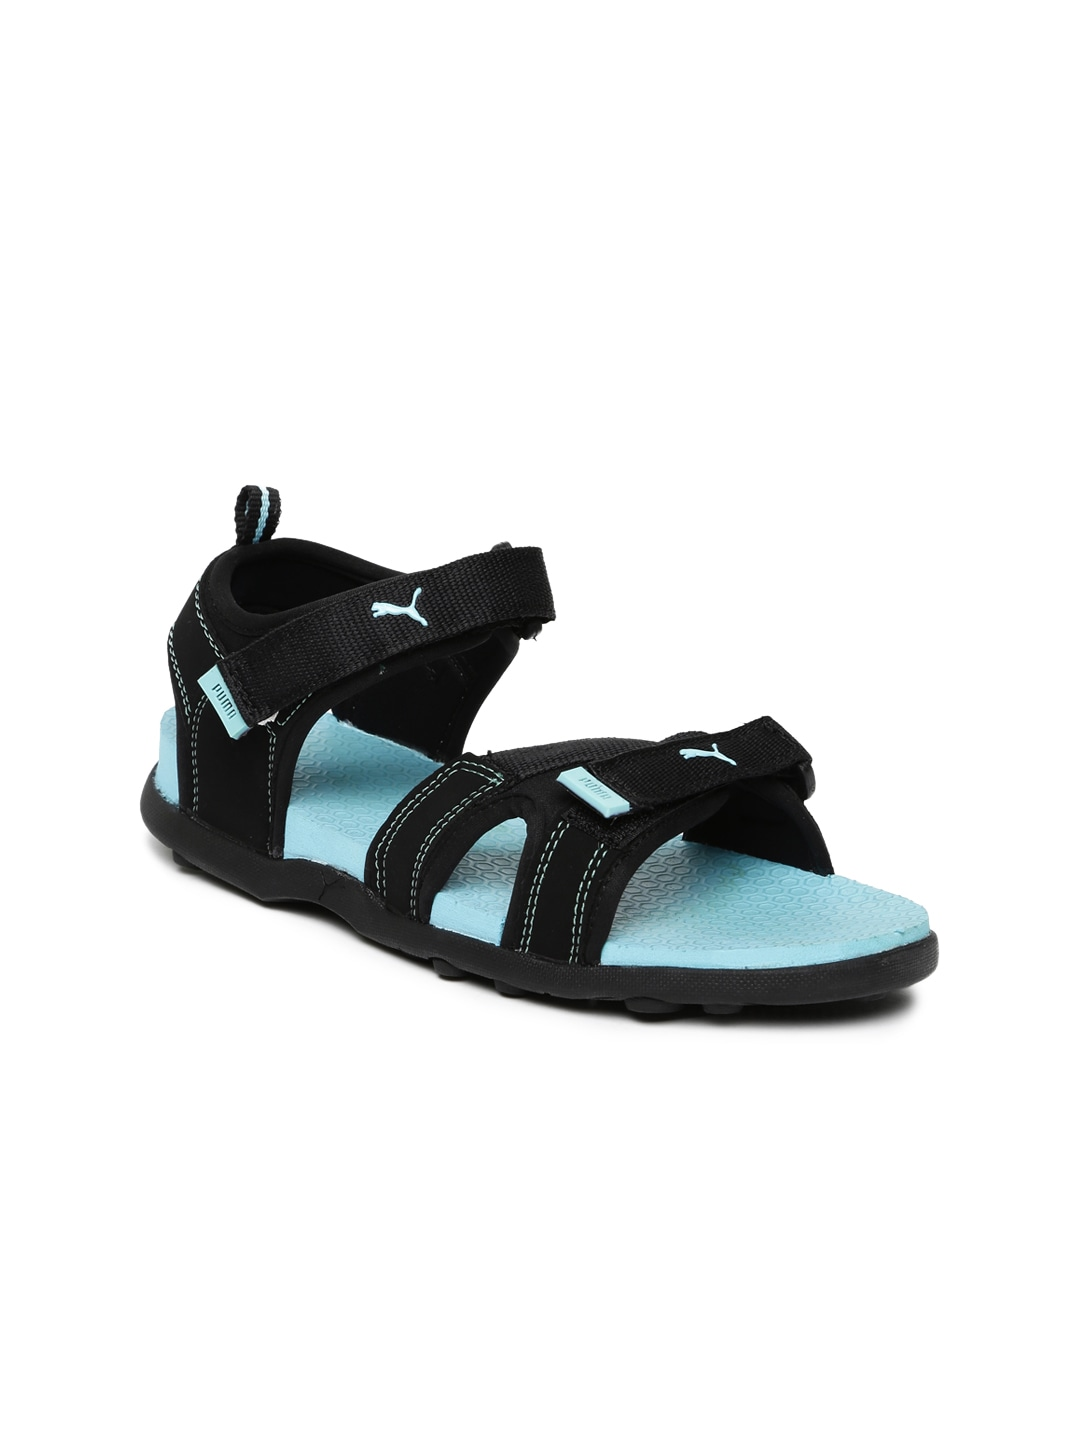 81b38e7d224f puma sandals lowest price online cheap   OFF67% Discounted